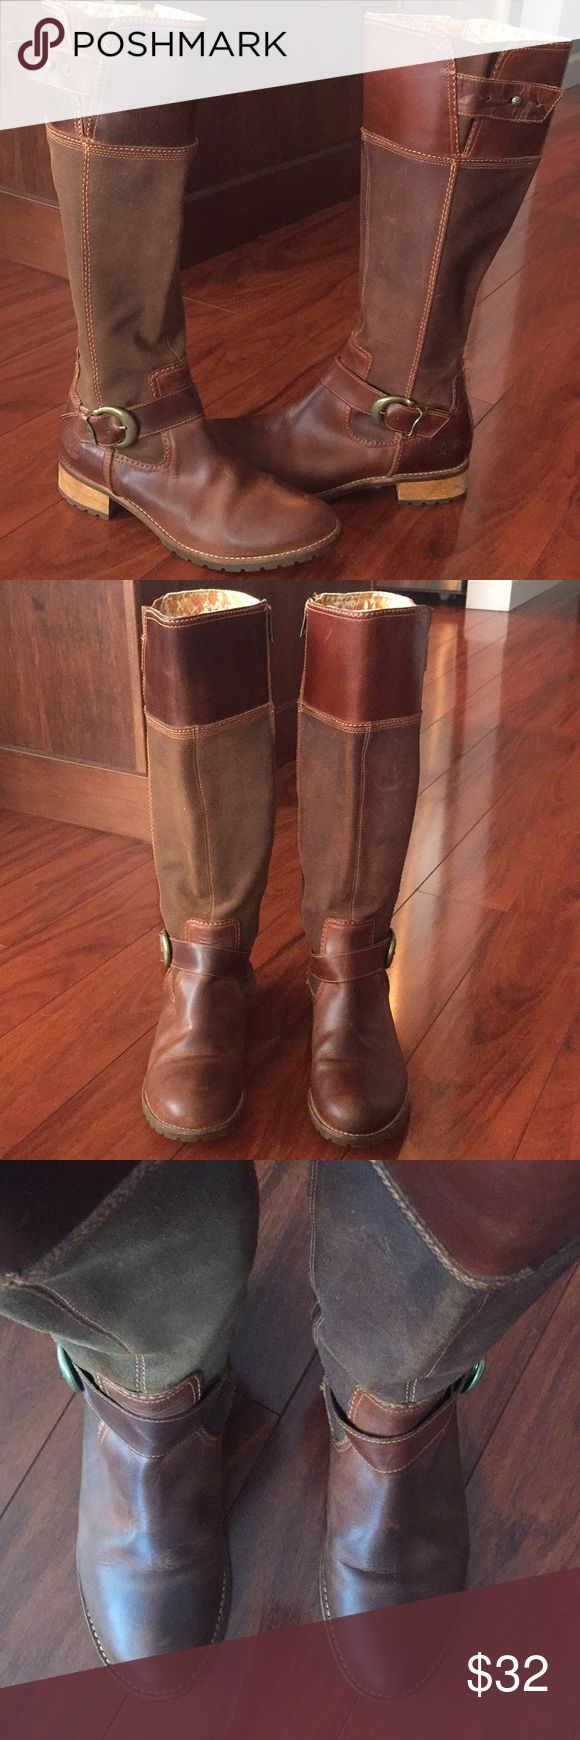 "Timberland 15"" tall brown leather boots Very good condition, not worn much. Full inside zip, adjustable top closure. Size 8. Few minor scratches, as will happen with leather. Timberland Shoes"